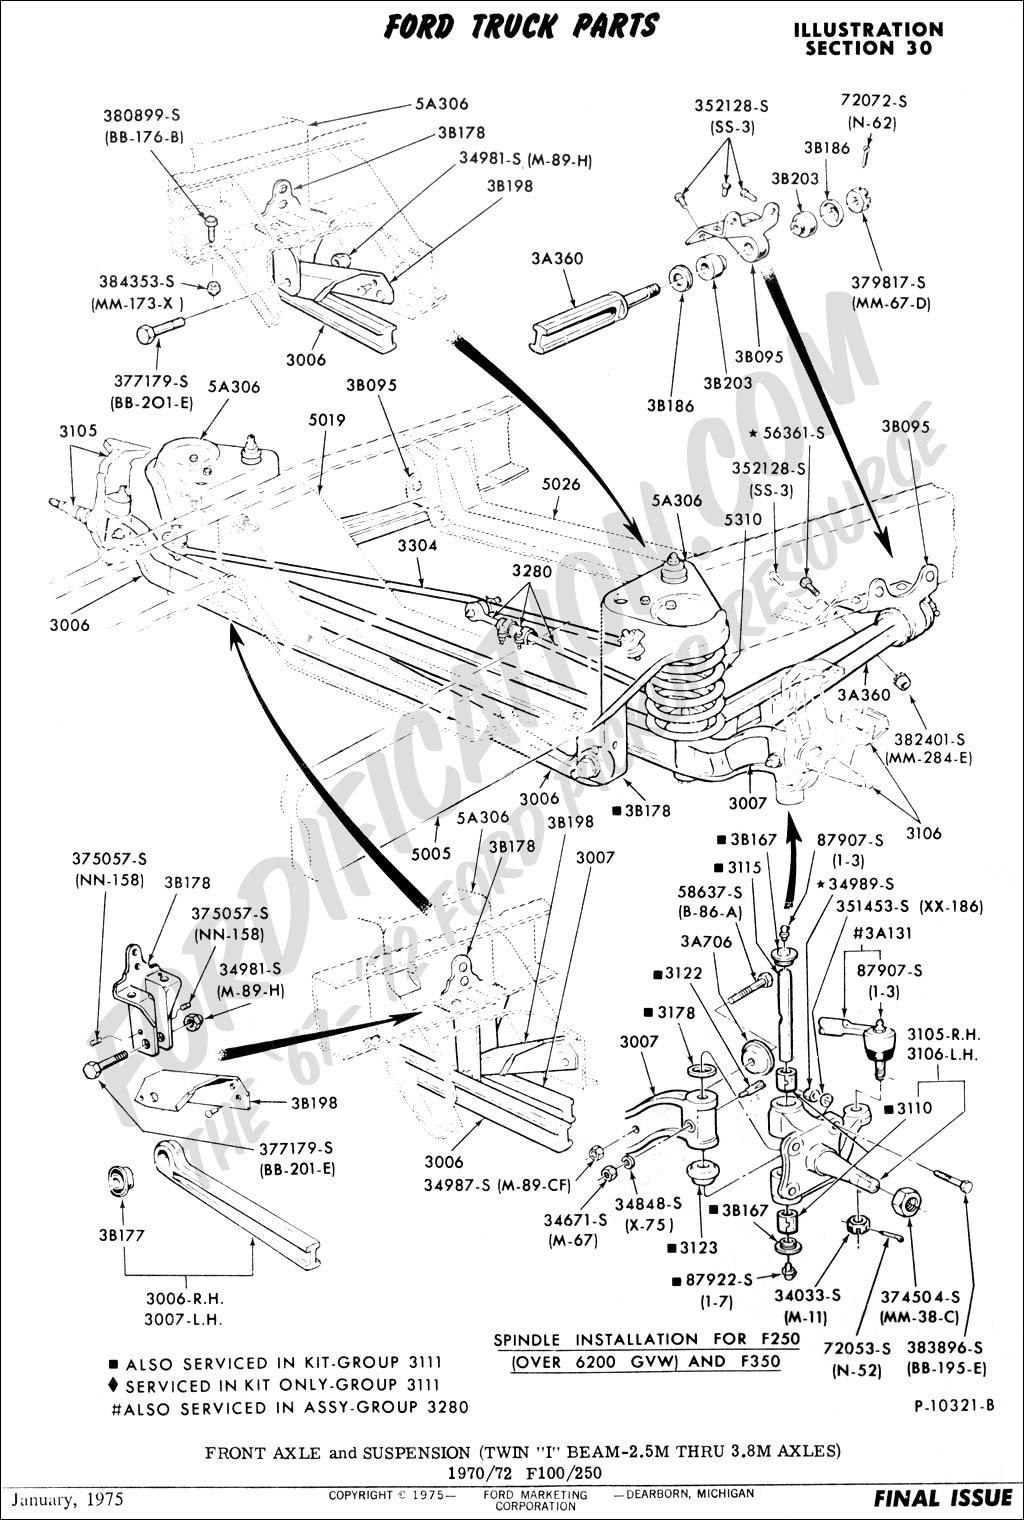 1977 f150 front axle diagram schematics wiring diagrams u2022 rh parntesis  co 1993 F150 Headlights Ford